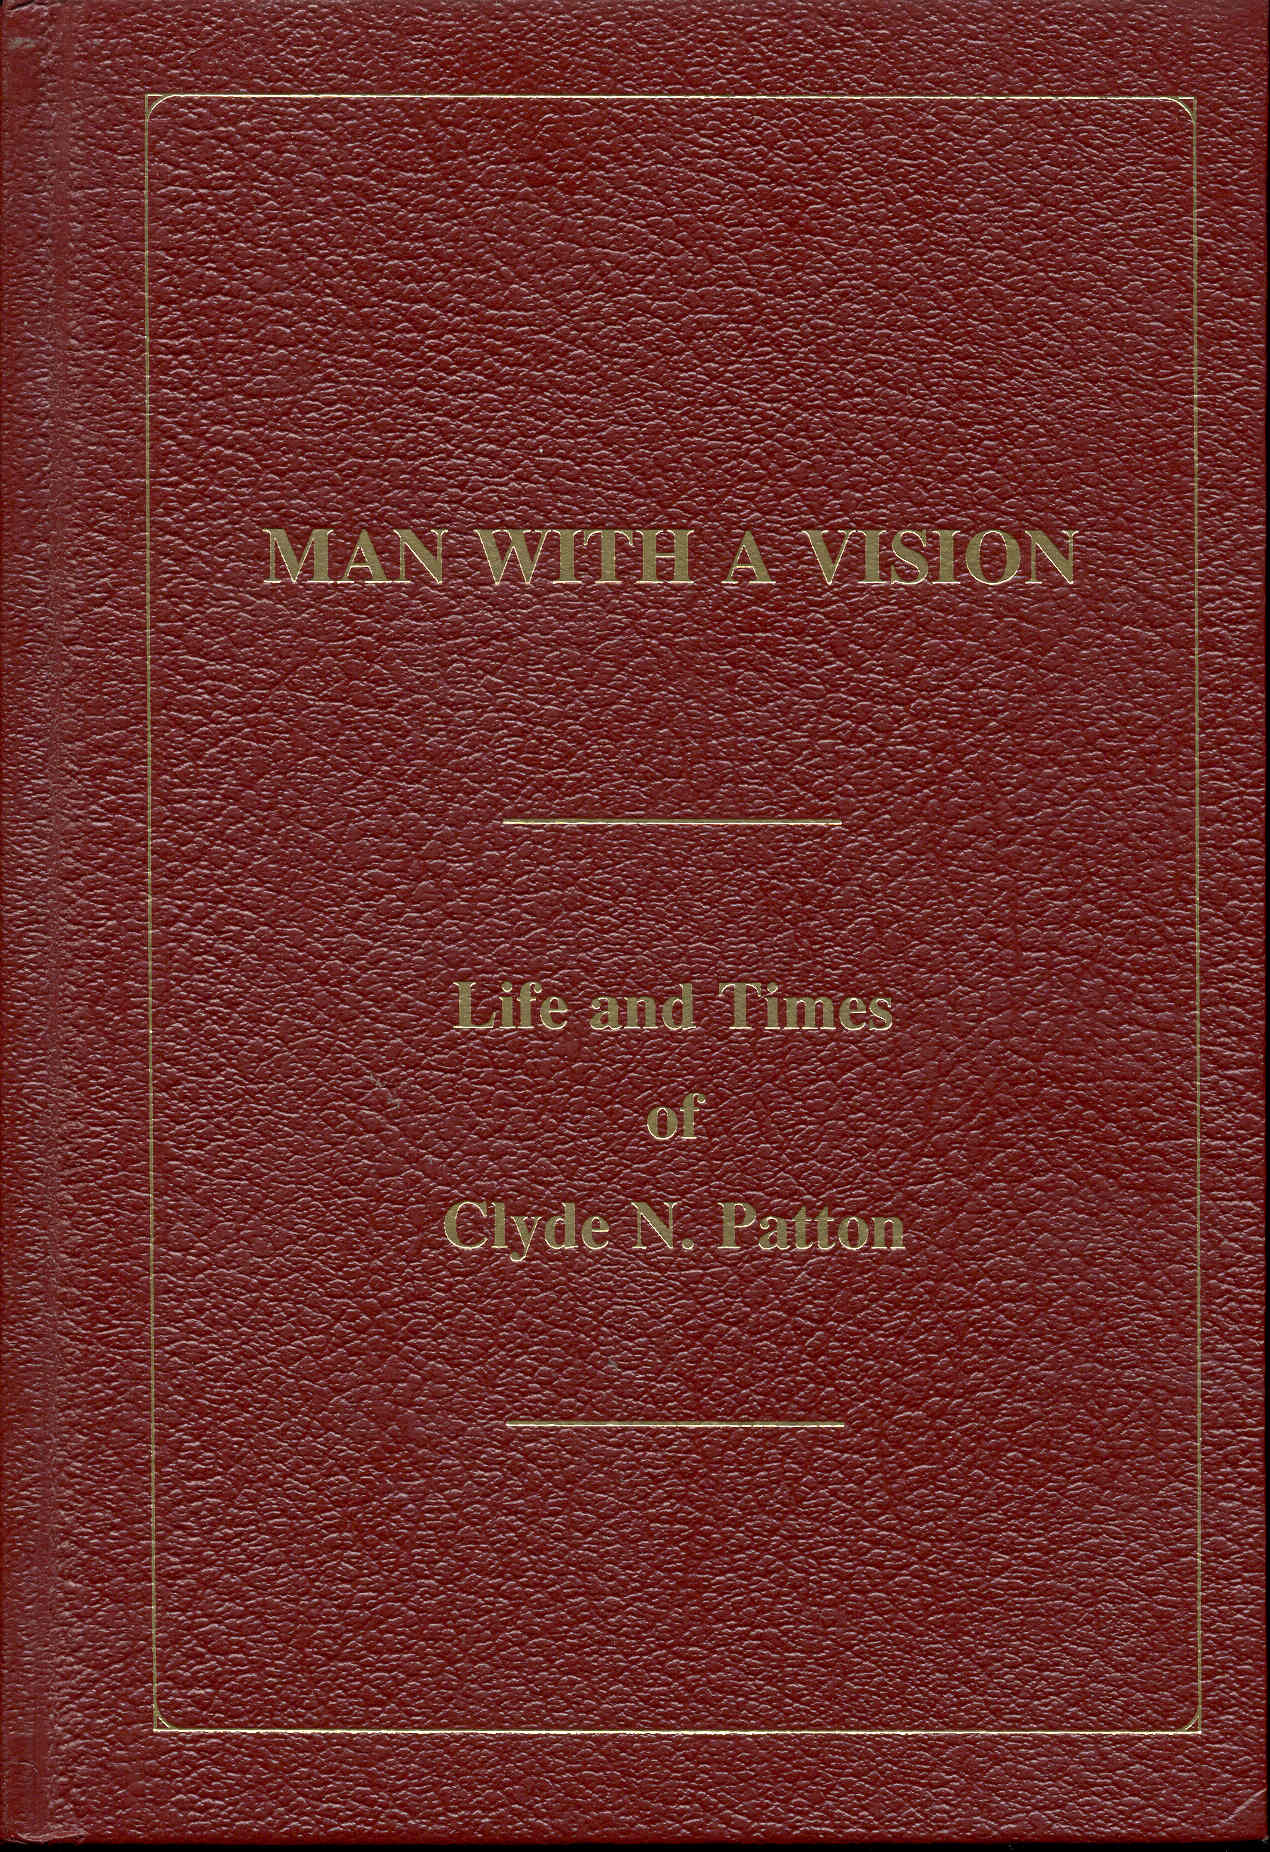 Image for Man with a Vision: Life and Times of Clyde N. Patton